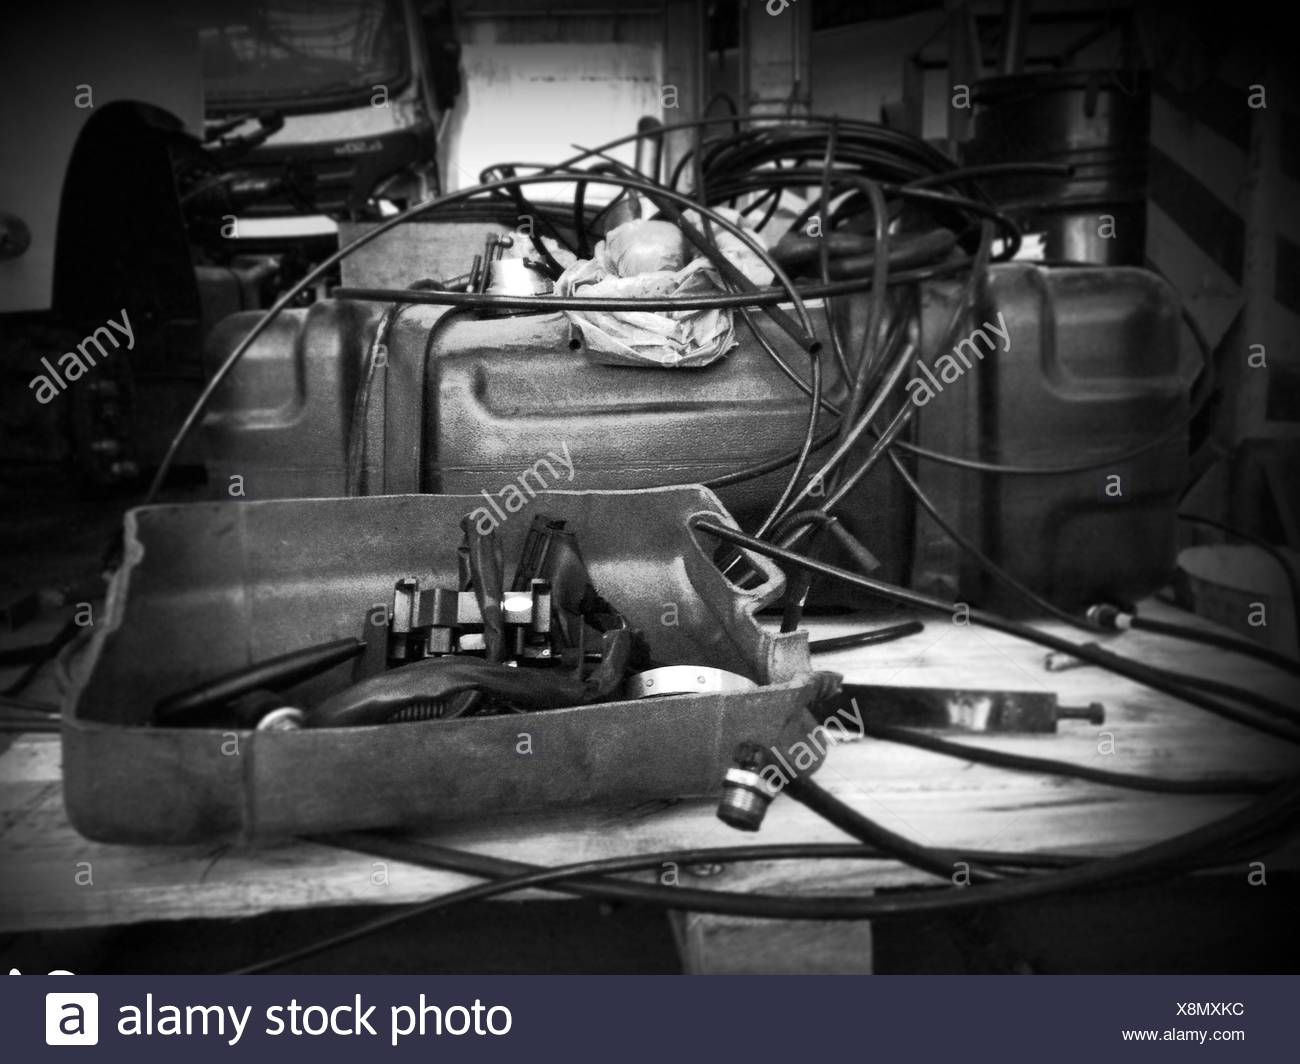 Disassembled Parts Of Machine On Table - Stock Image